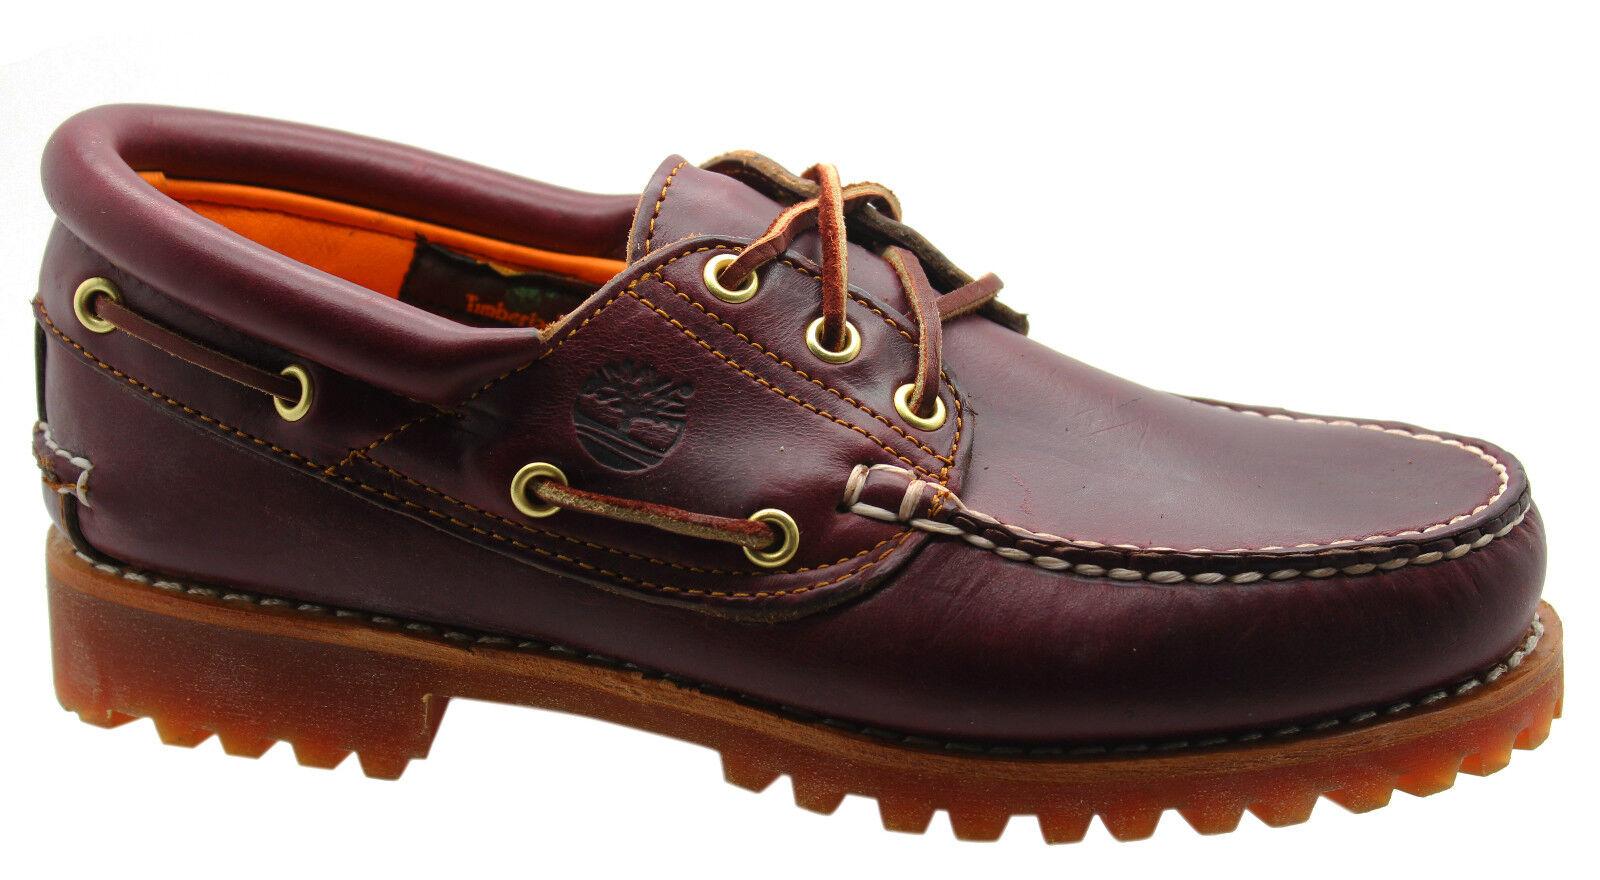 a7390552 Timberland 3 Eye Classic Lug Mens Boat Shoes Deck Red Brown Leather ...